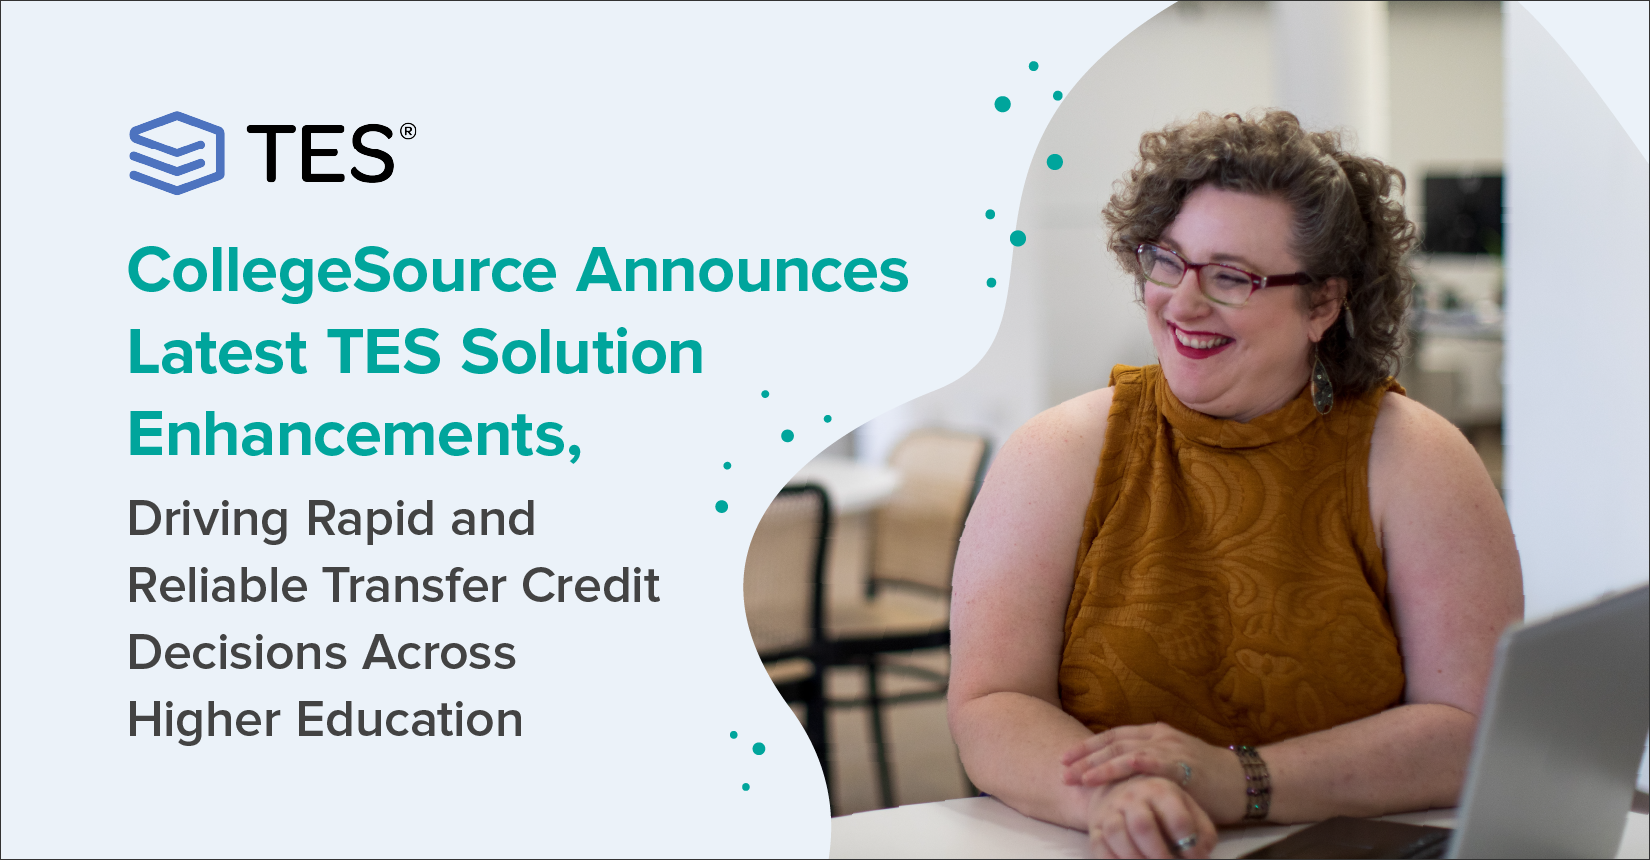 Woman smiling by computer, with text that says: CollegeSource Announces Latest TES Solution Enhancements